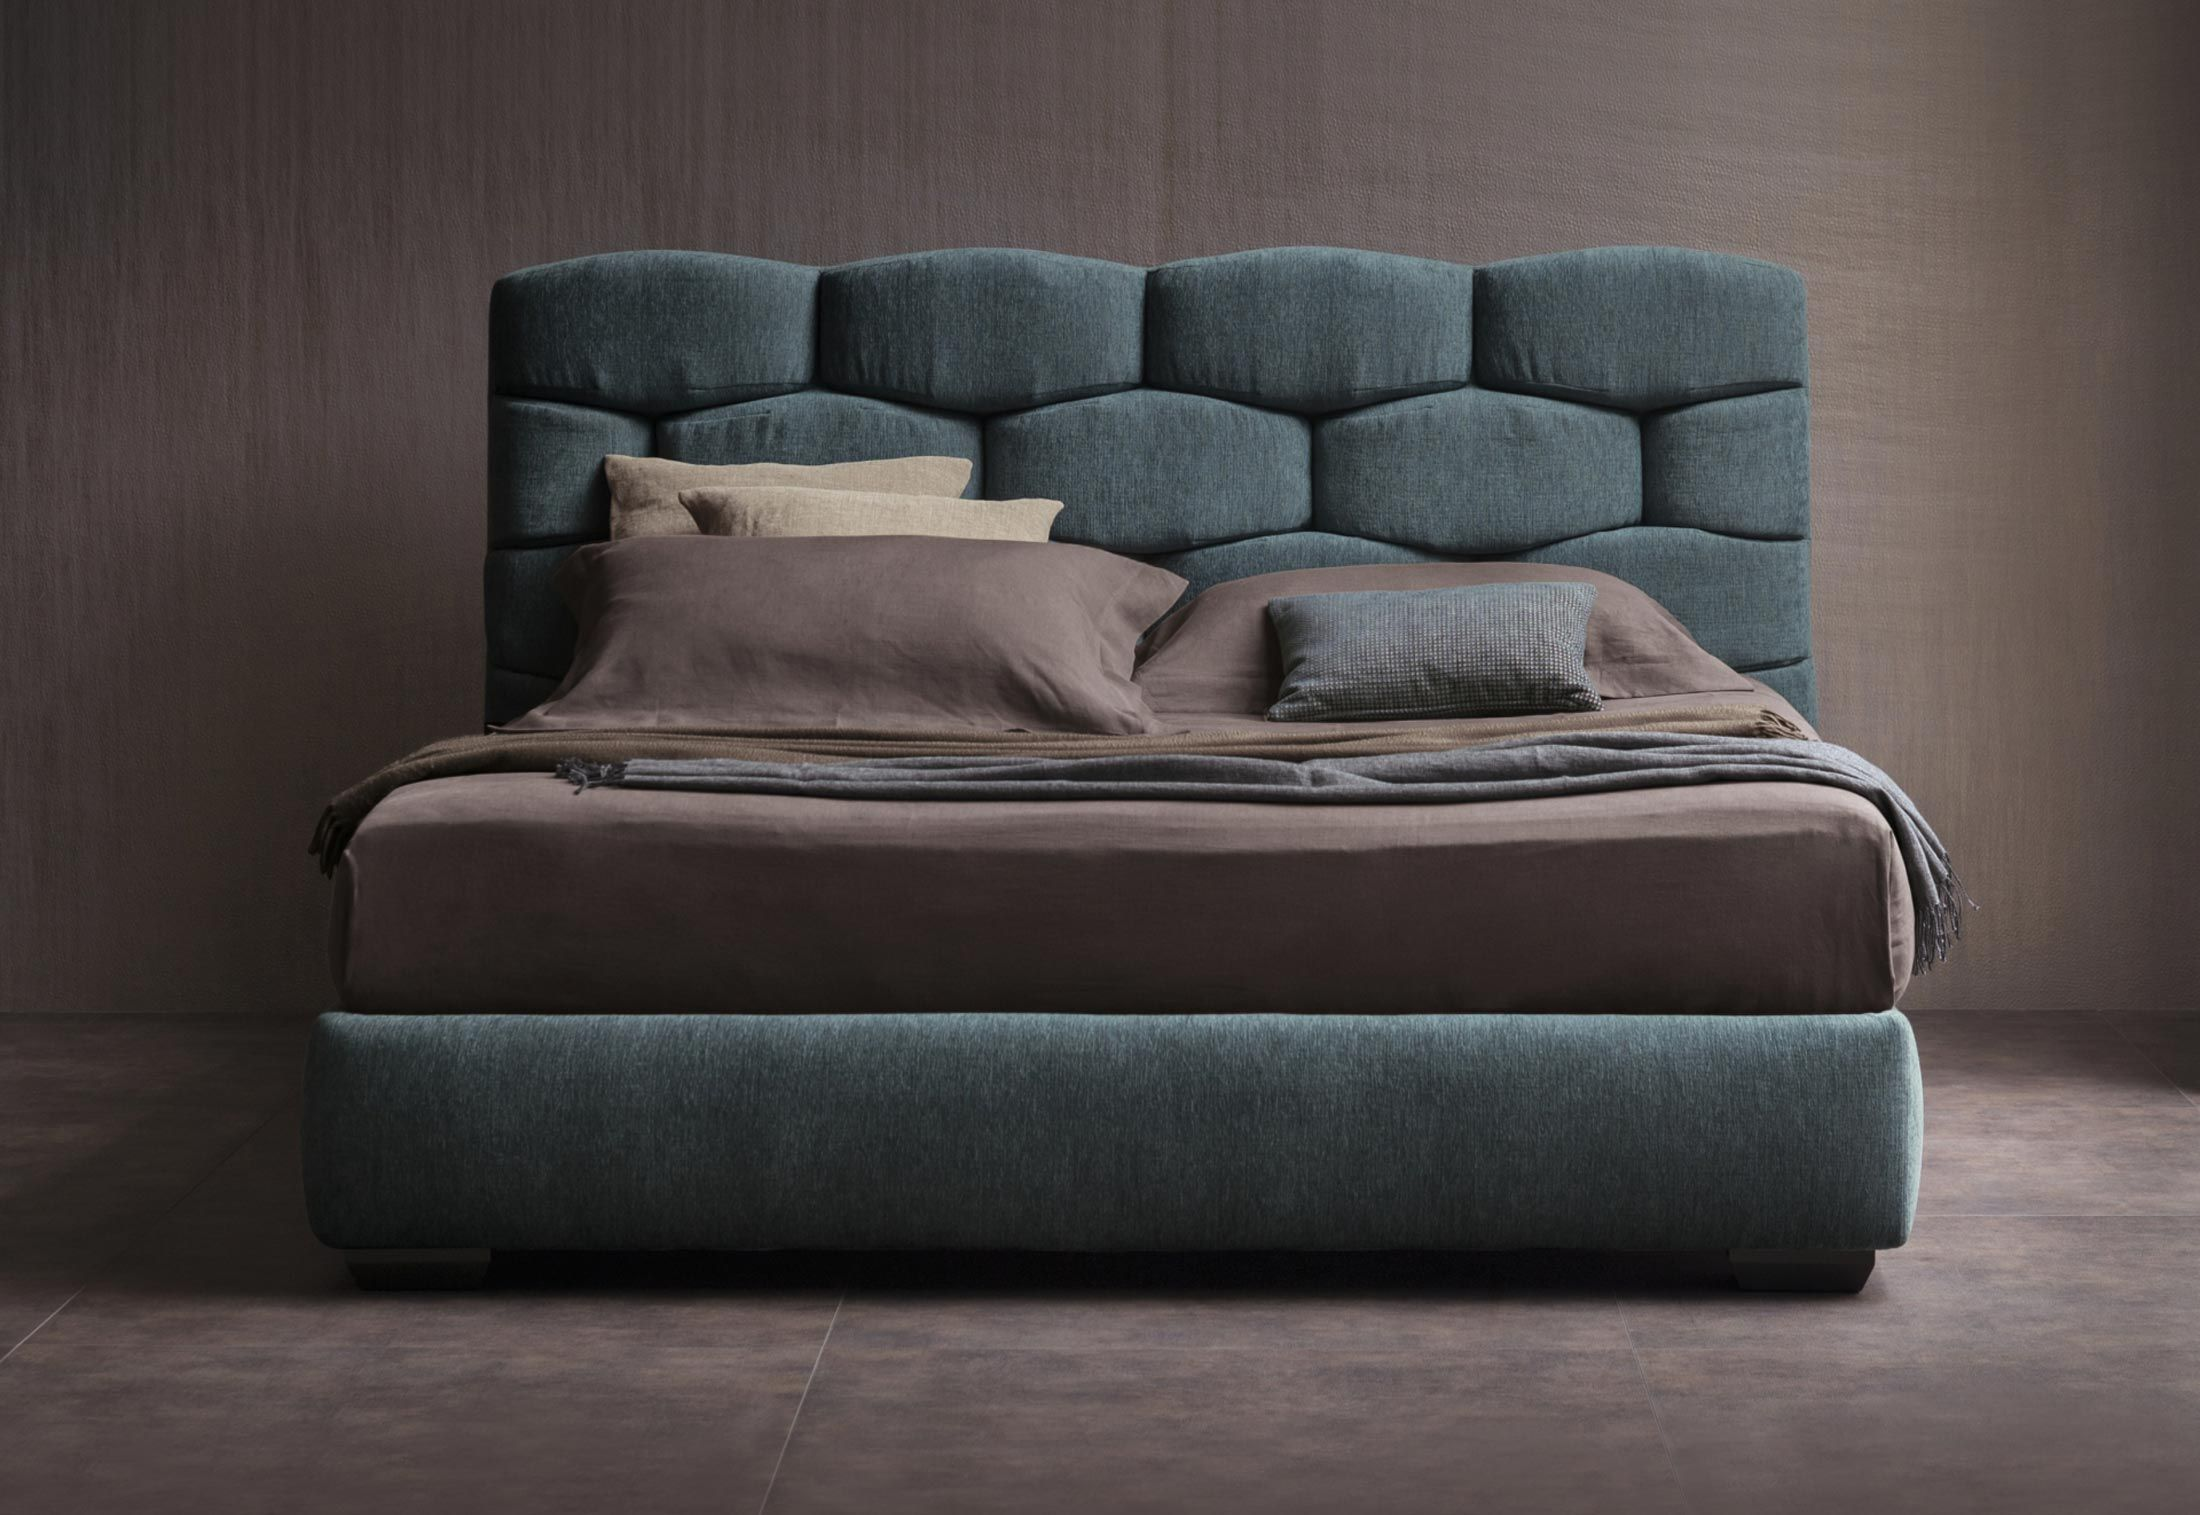 Majal Bed By Carlo Colombo For Flou Bedrooms Bed Room And Townhouse # Meuble Design Zein Chloe